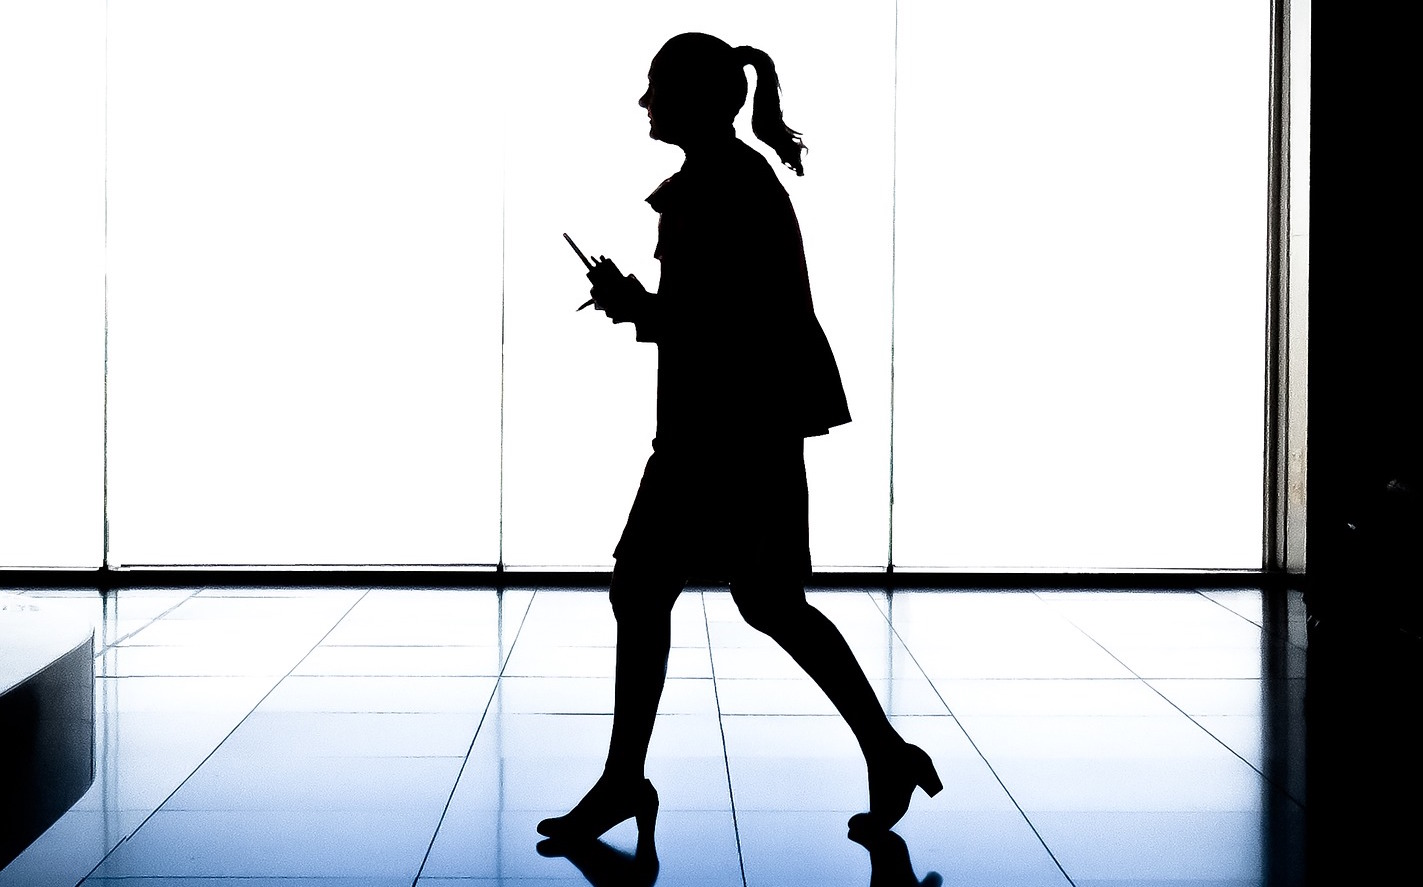 A picture of a woman on her own in an office